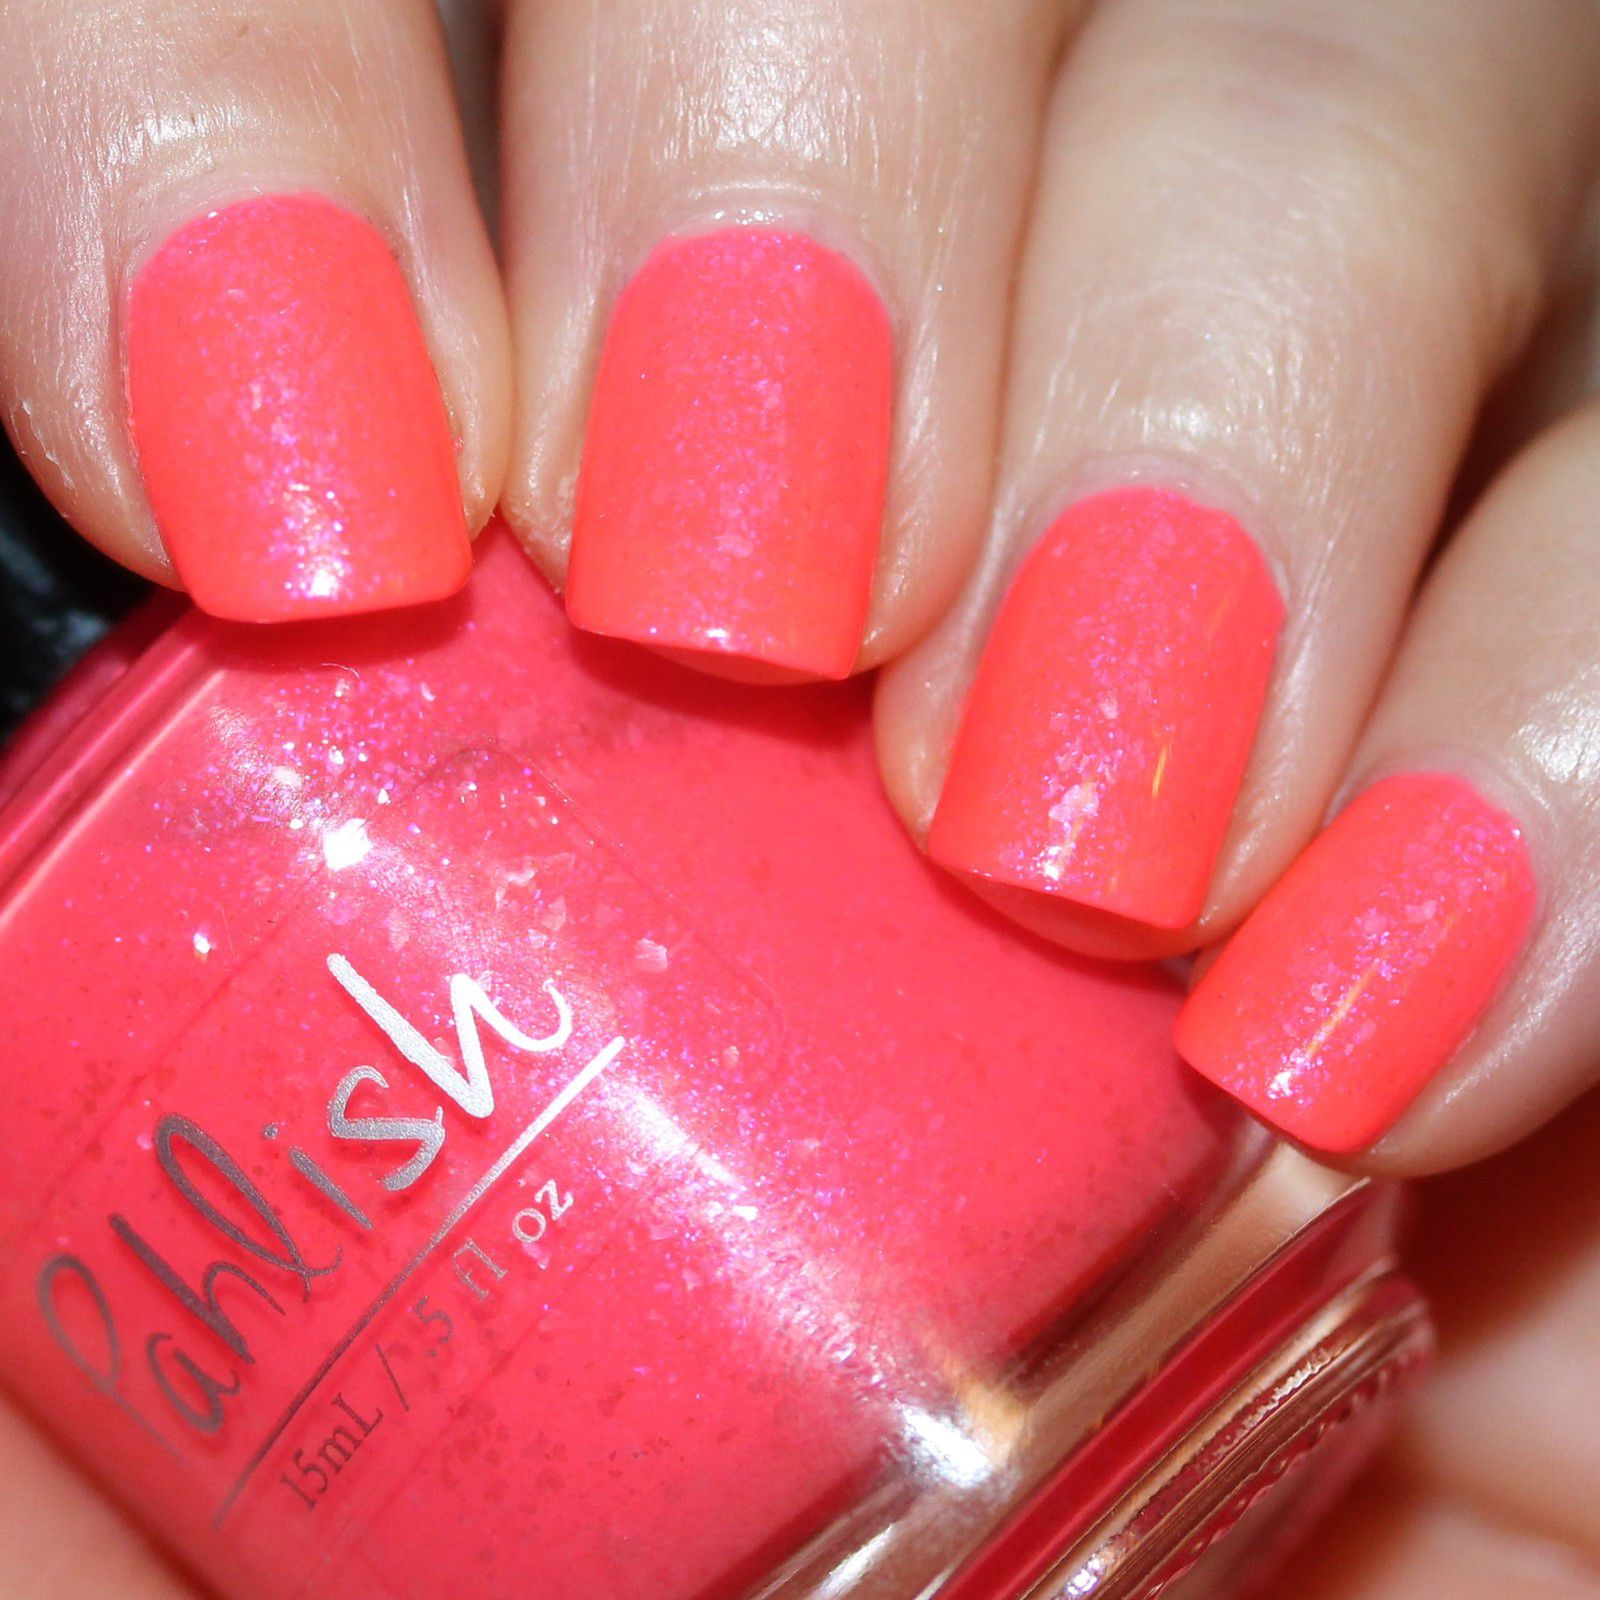 Essie Protein Base Coat / Pahlish Watermelon Punch / HK Girl Top Coat